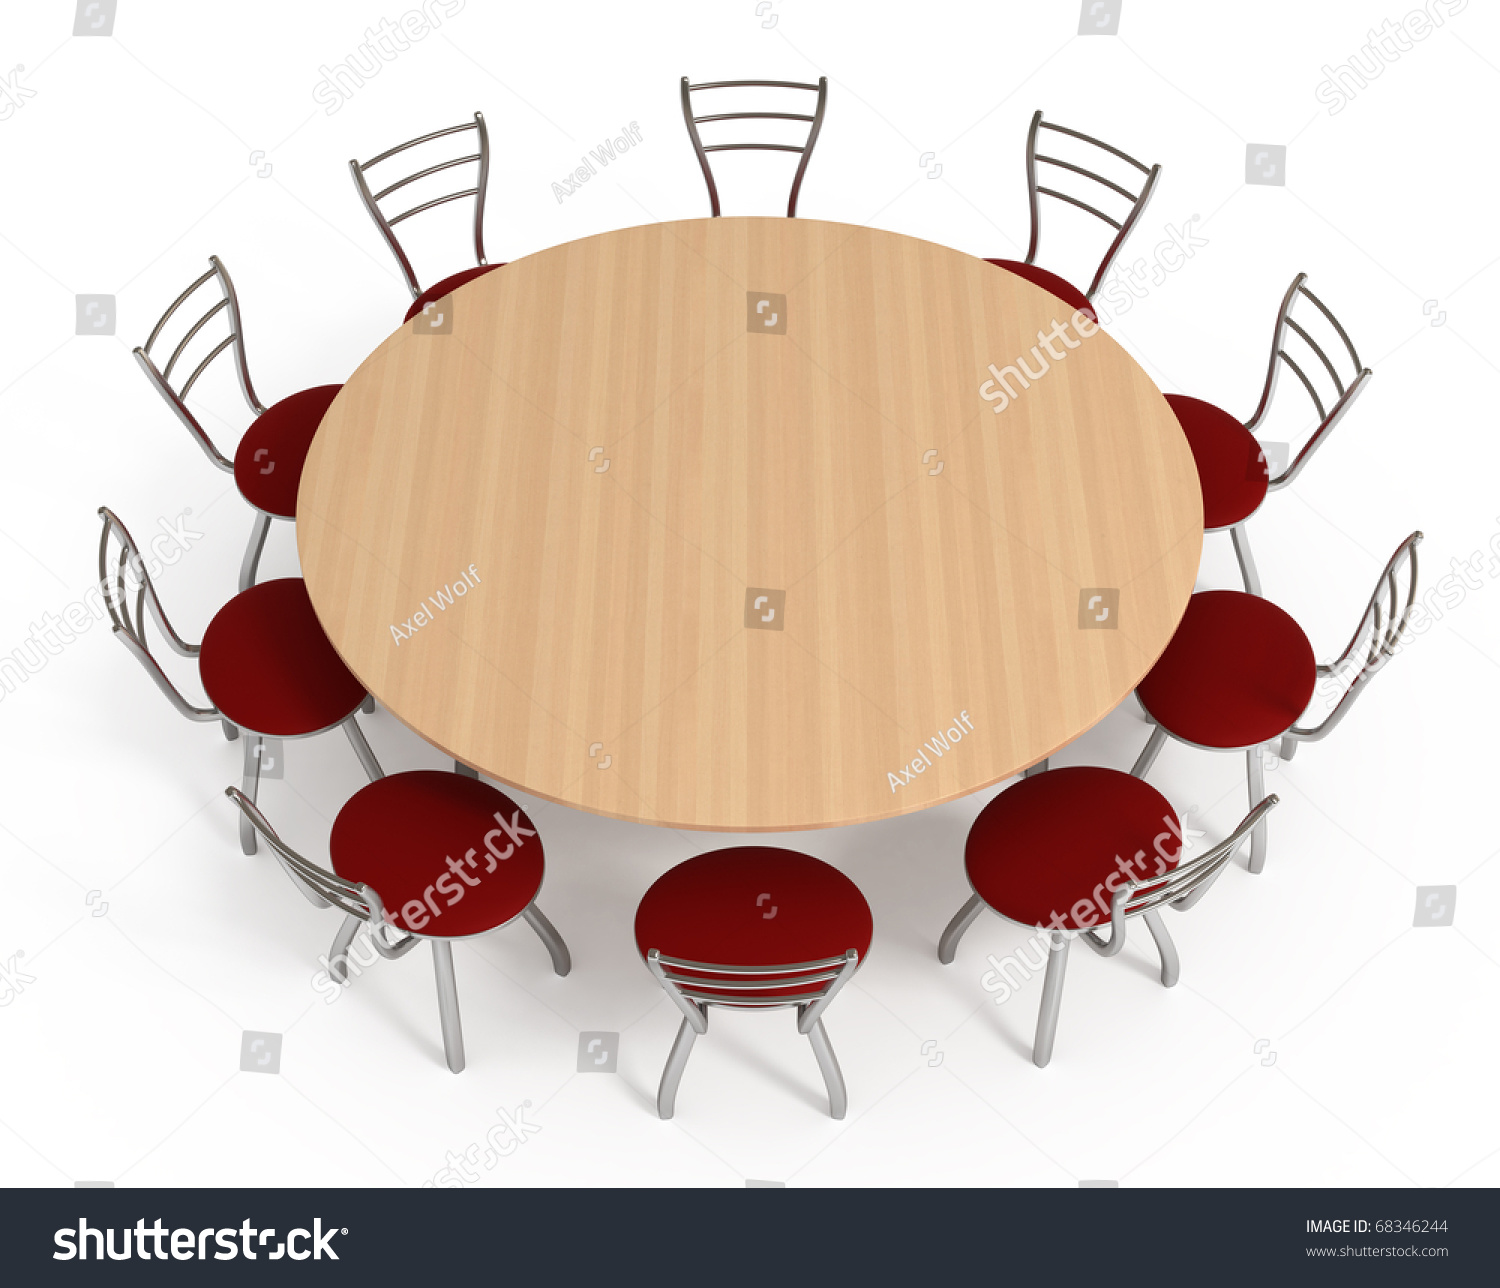 Round Table With Chairs Isolated On White With Clipping Path D - Round table clip art